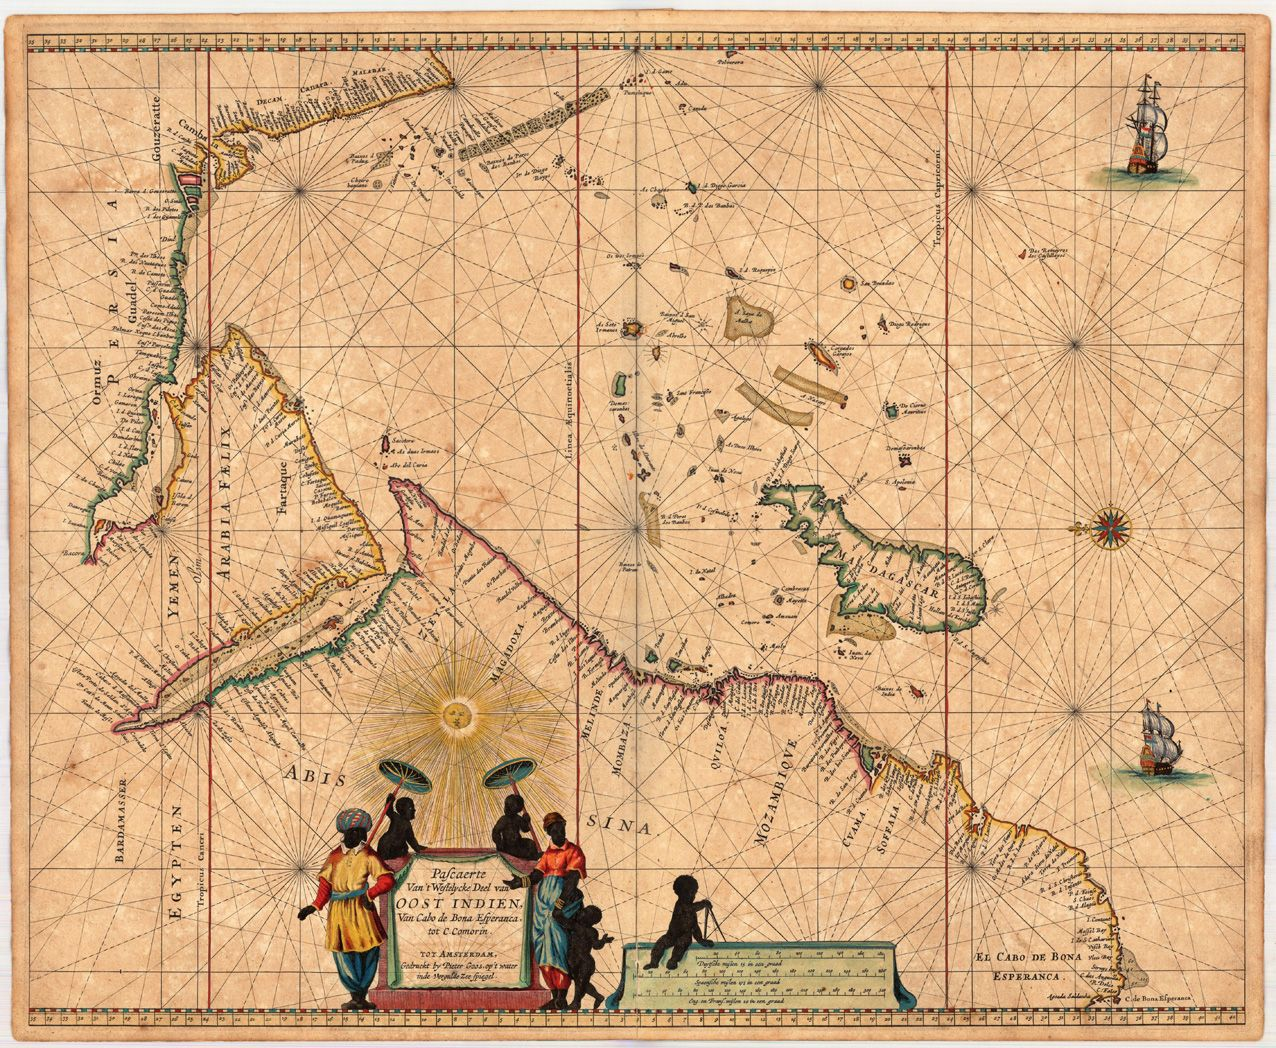 1660 Decorative map of the Indian Ocean